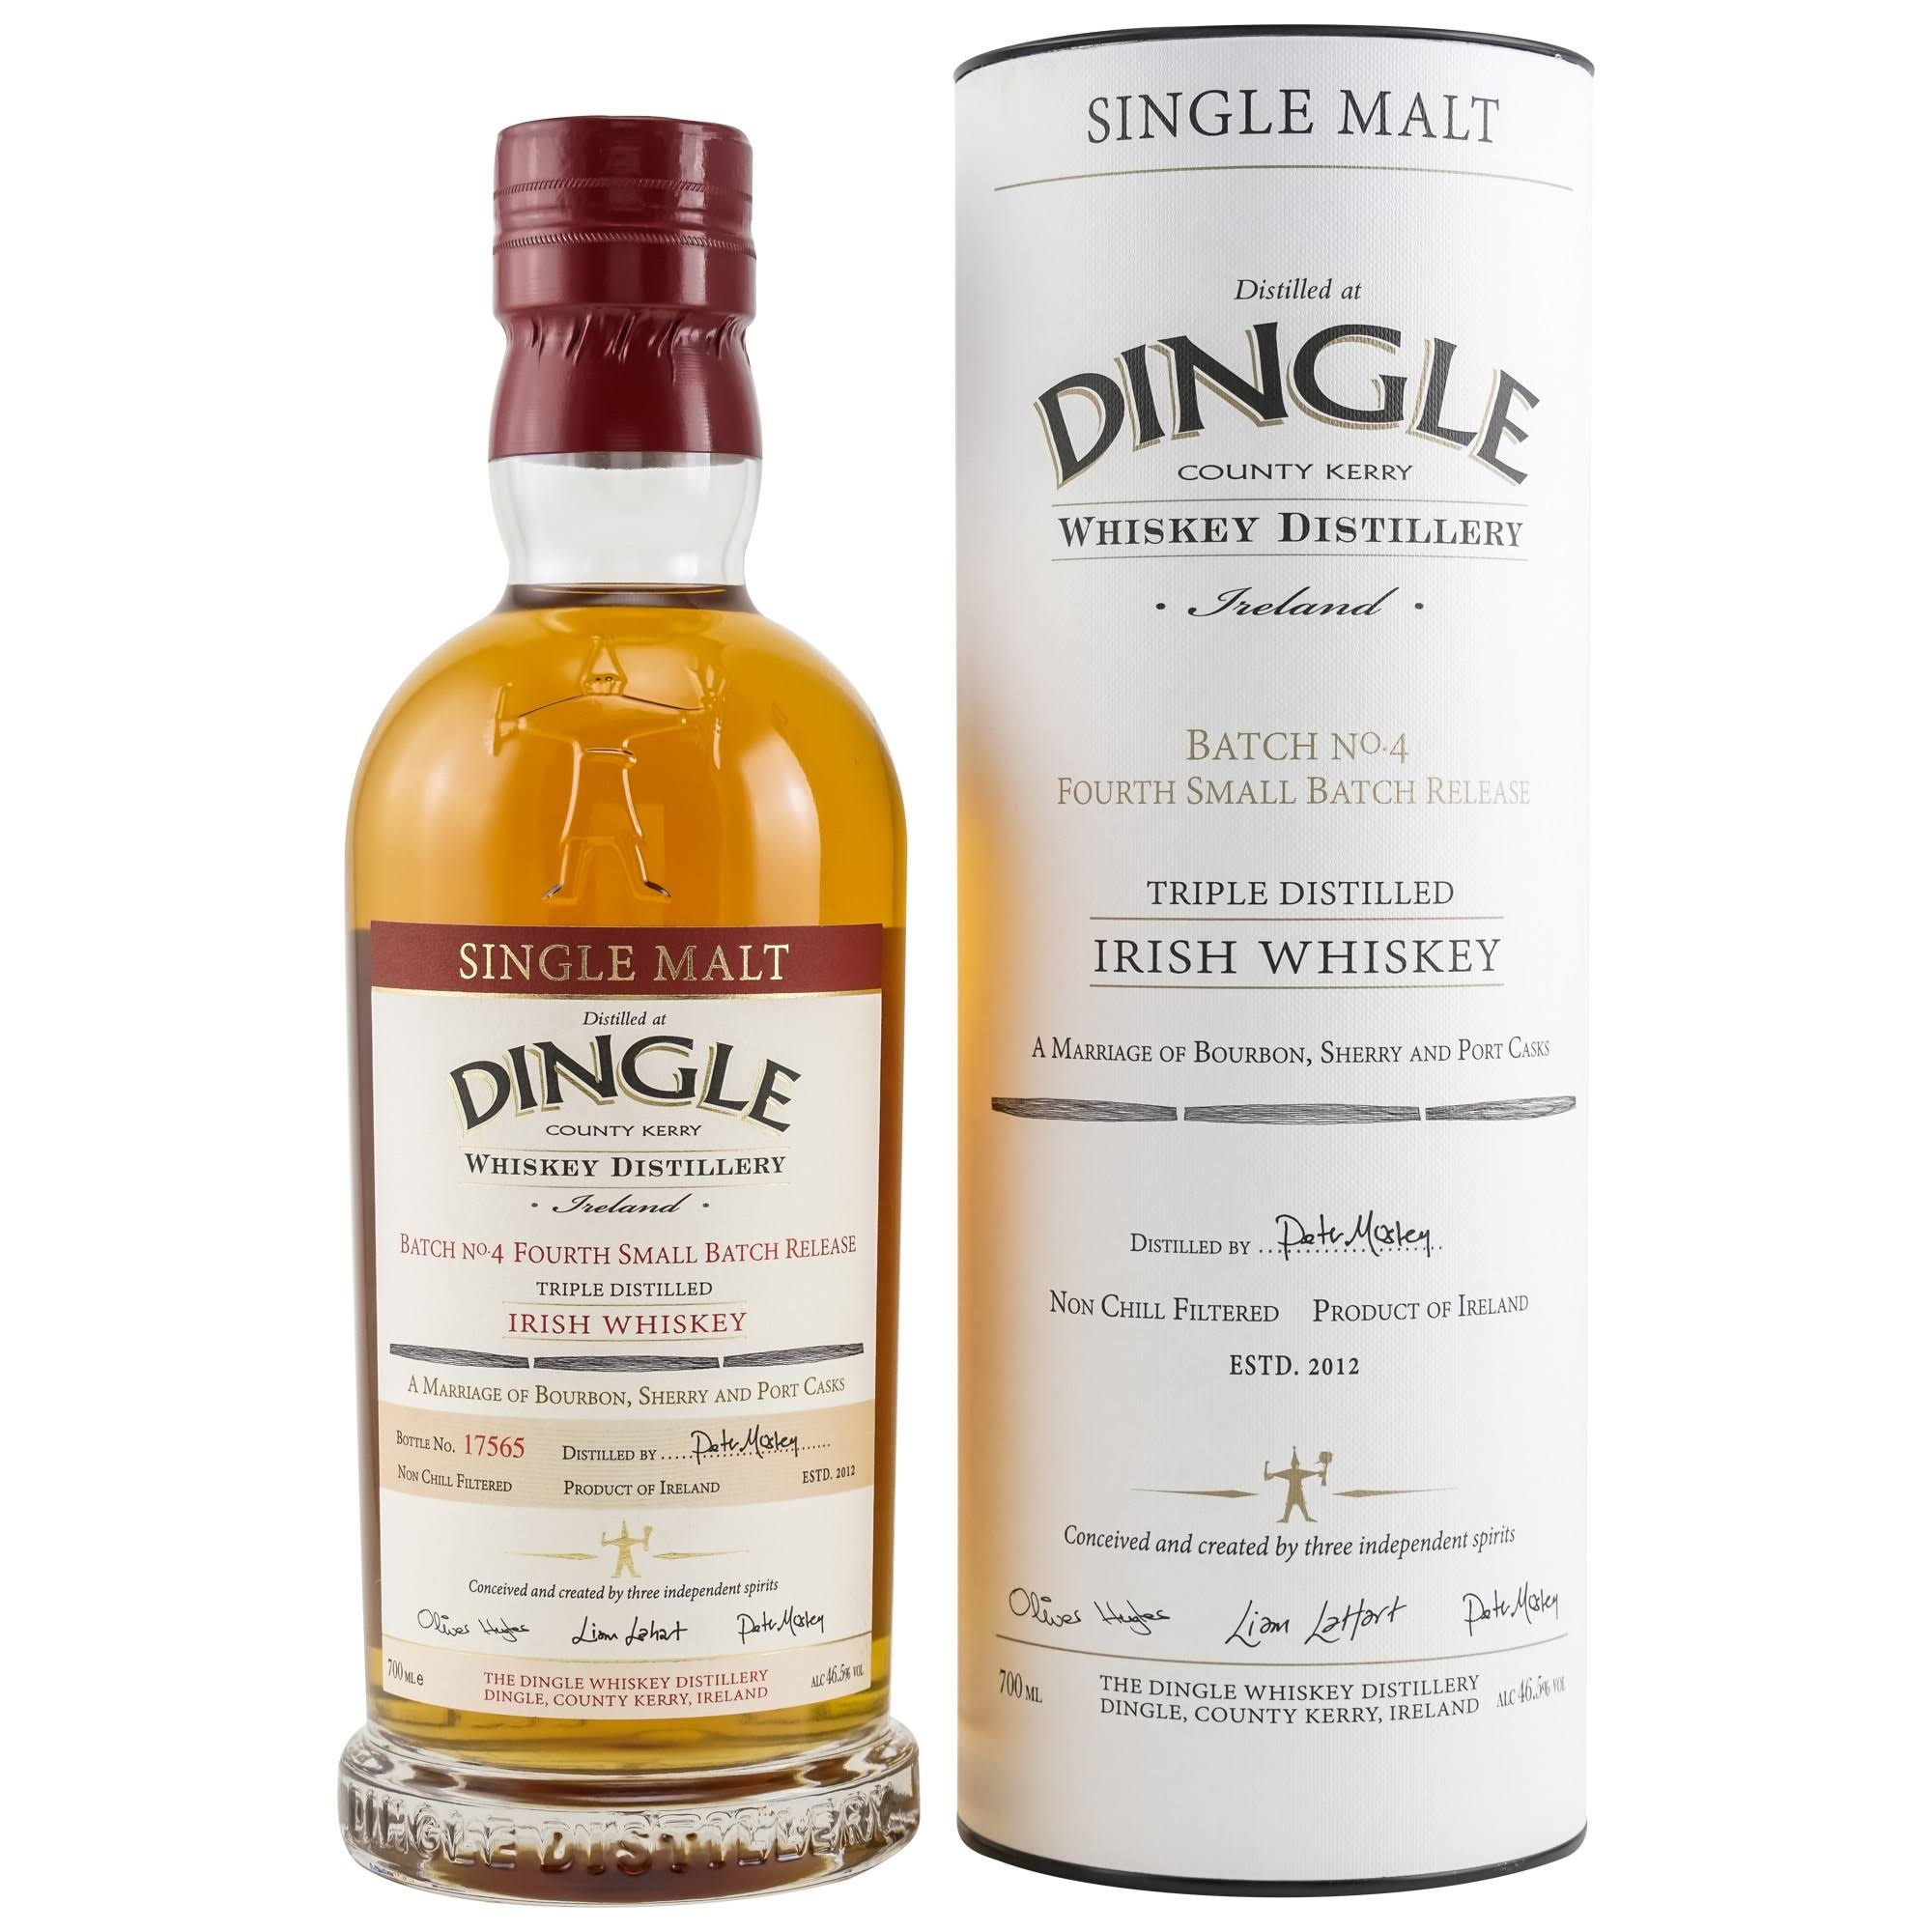 Dingle Single Malt - Batch No.4 Single Malt Whiskey